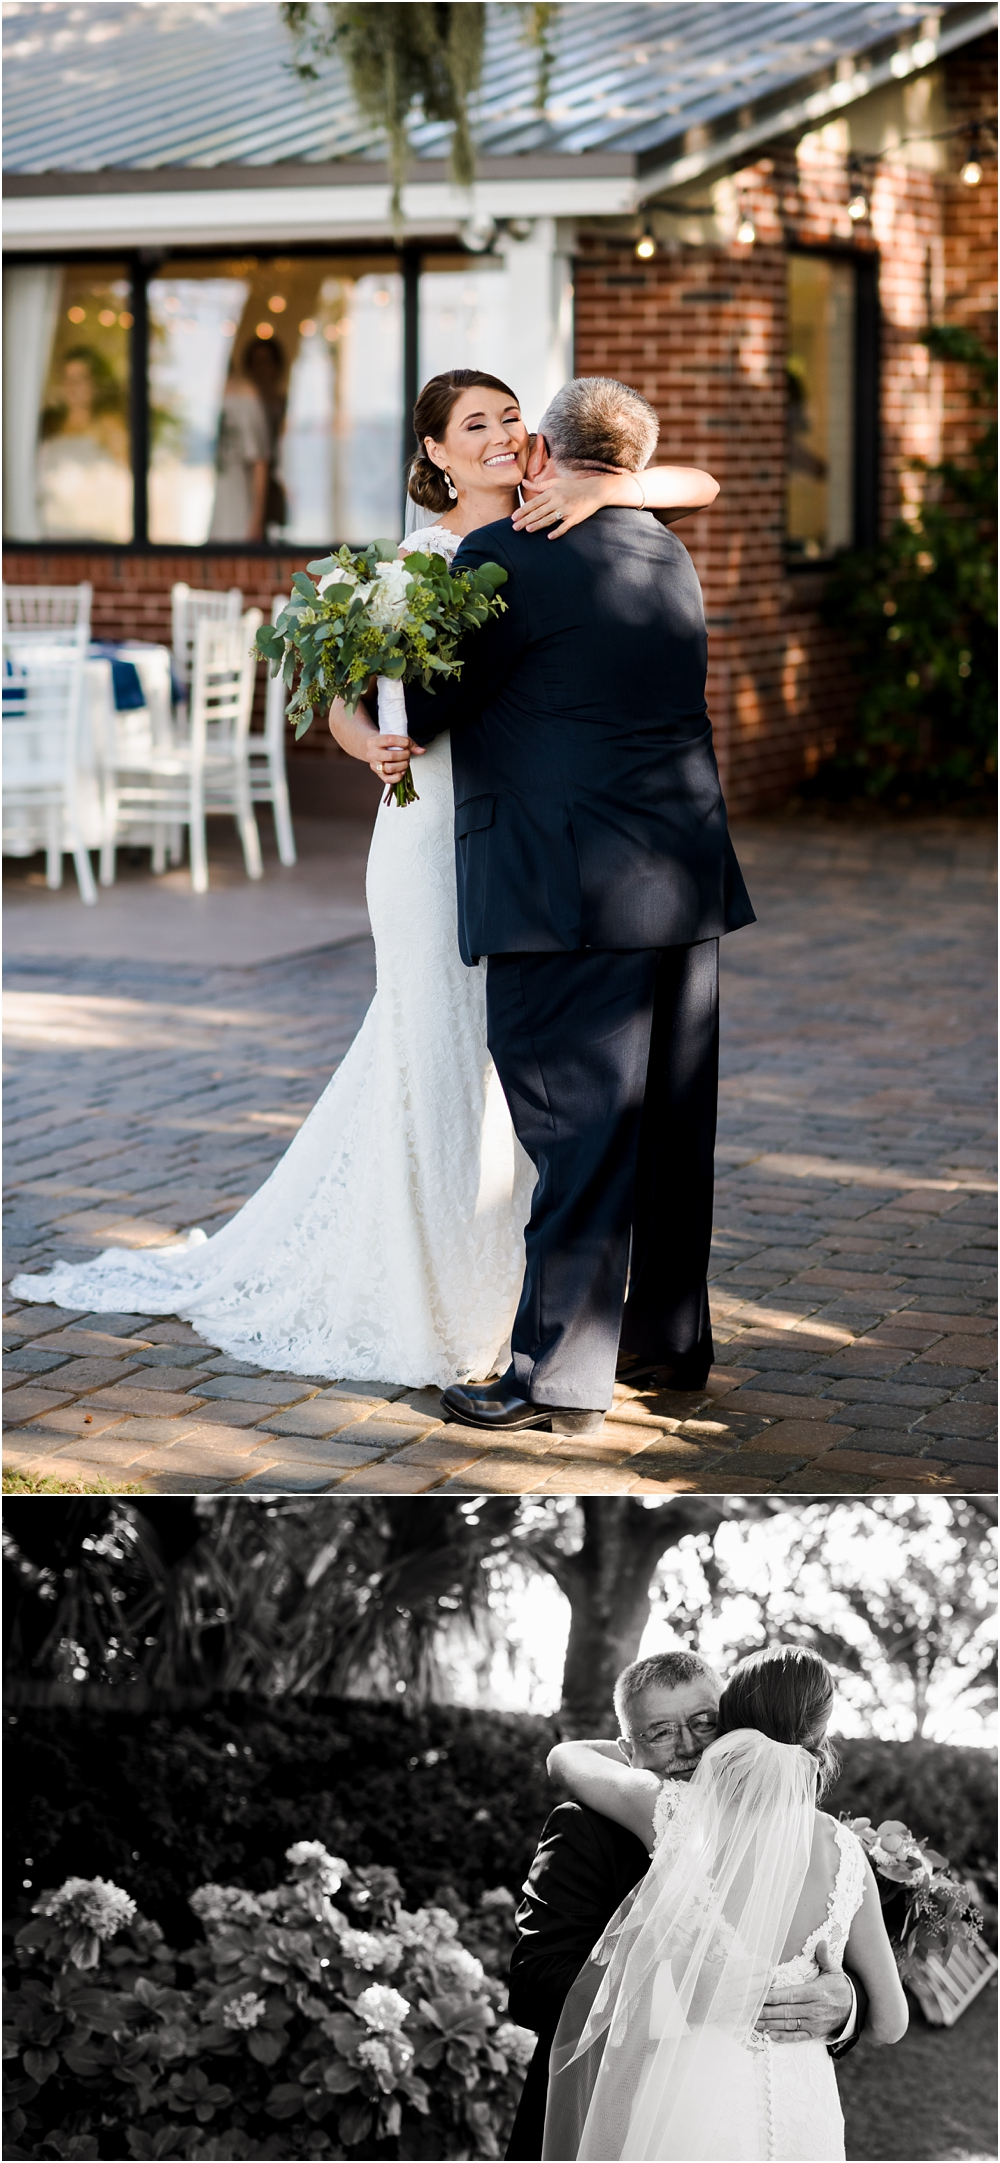 varner-florida-wedding-photographer-30a-panama-city-beach-destin-tallahassee-kiersten-grant-photography-40.jpg